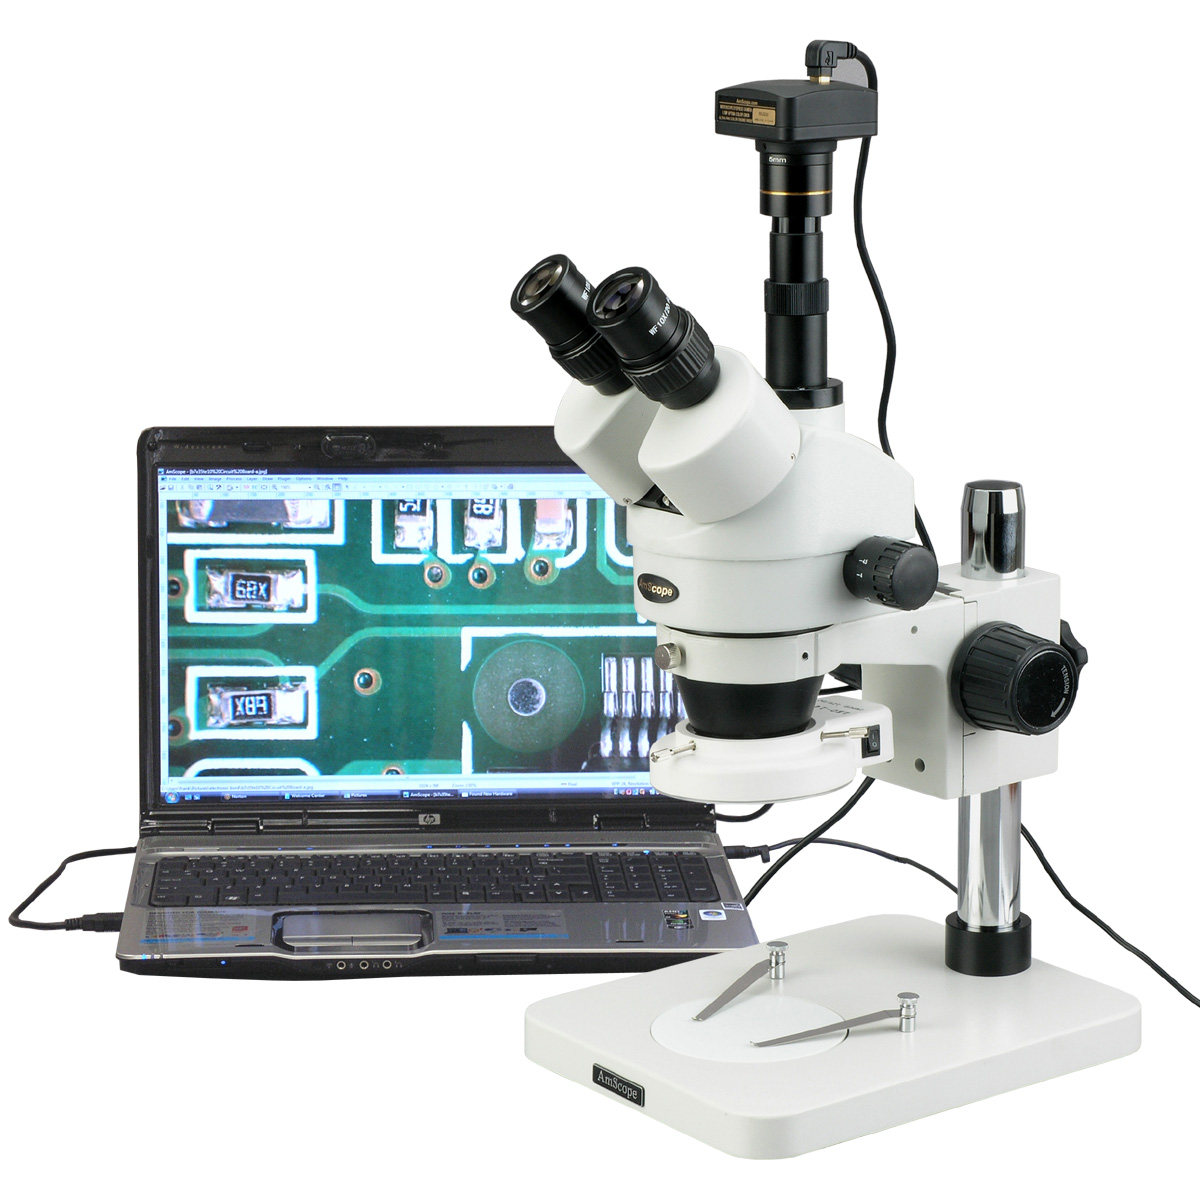 AmScope 3.5X-180X Manufacturing 144-LED Zoom Stereo Microscope with 10MP Digital Camera New